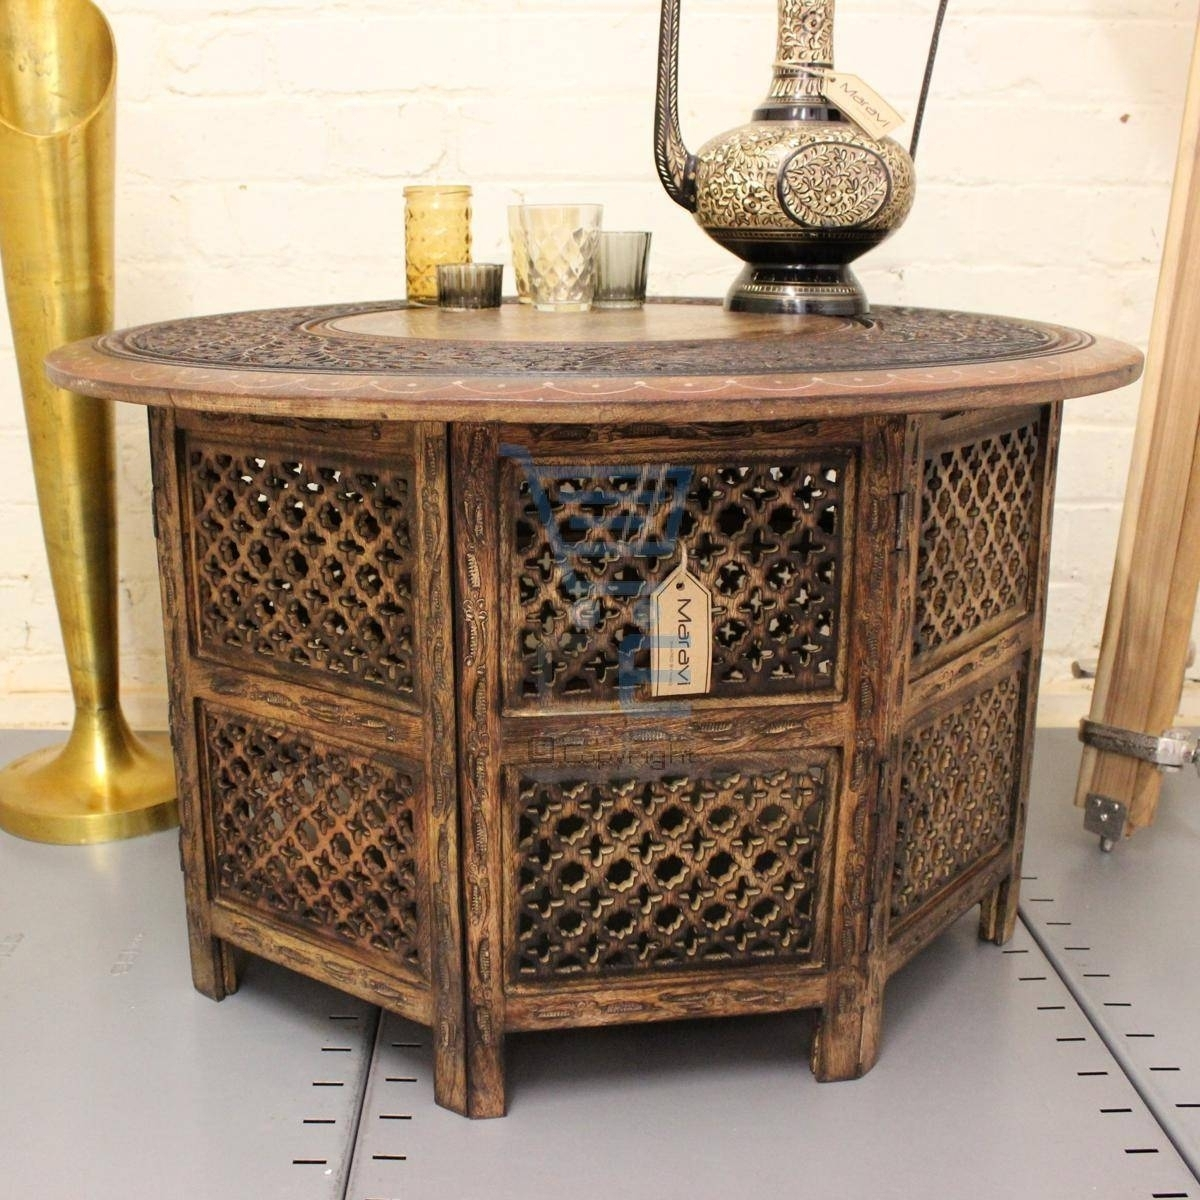 Round Carved Wood Coffee Table The Best Indian Coffee Tables within Round Carved Wood Coffee Tables (Image 23 of 30)